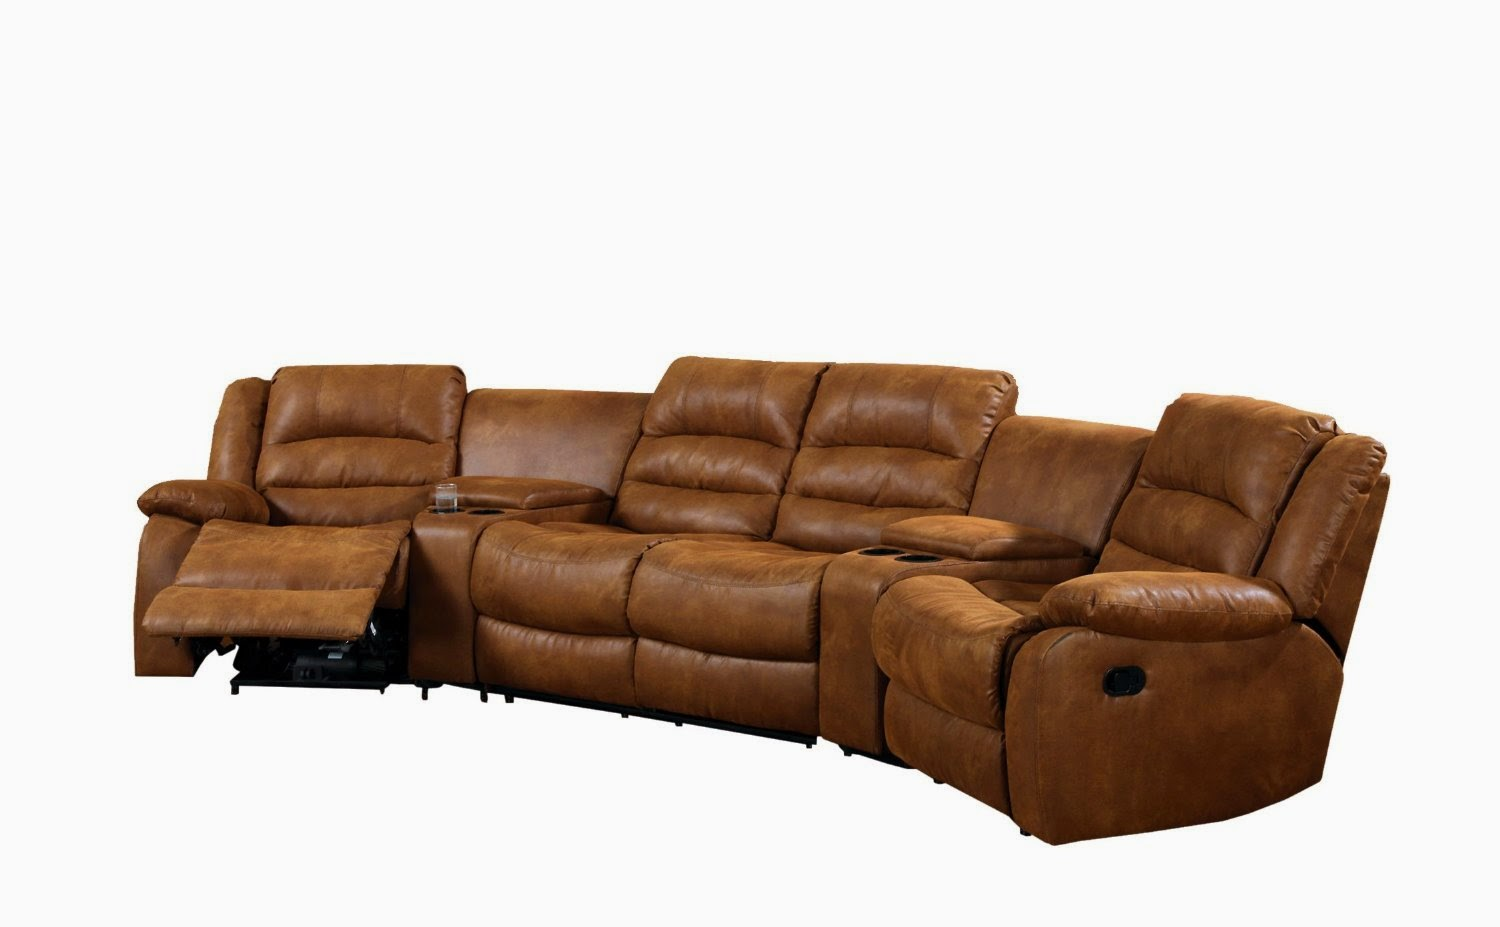 Cheap recliner sofas for sale contemporary reclining sofa Discount designer sofas